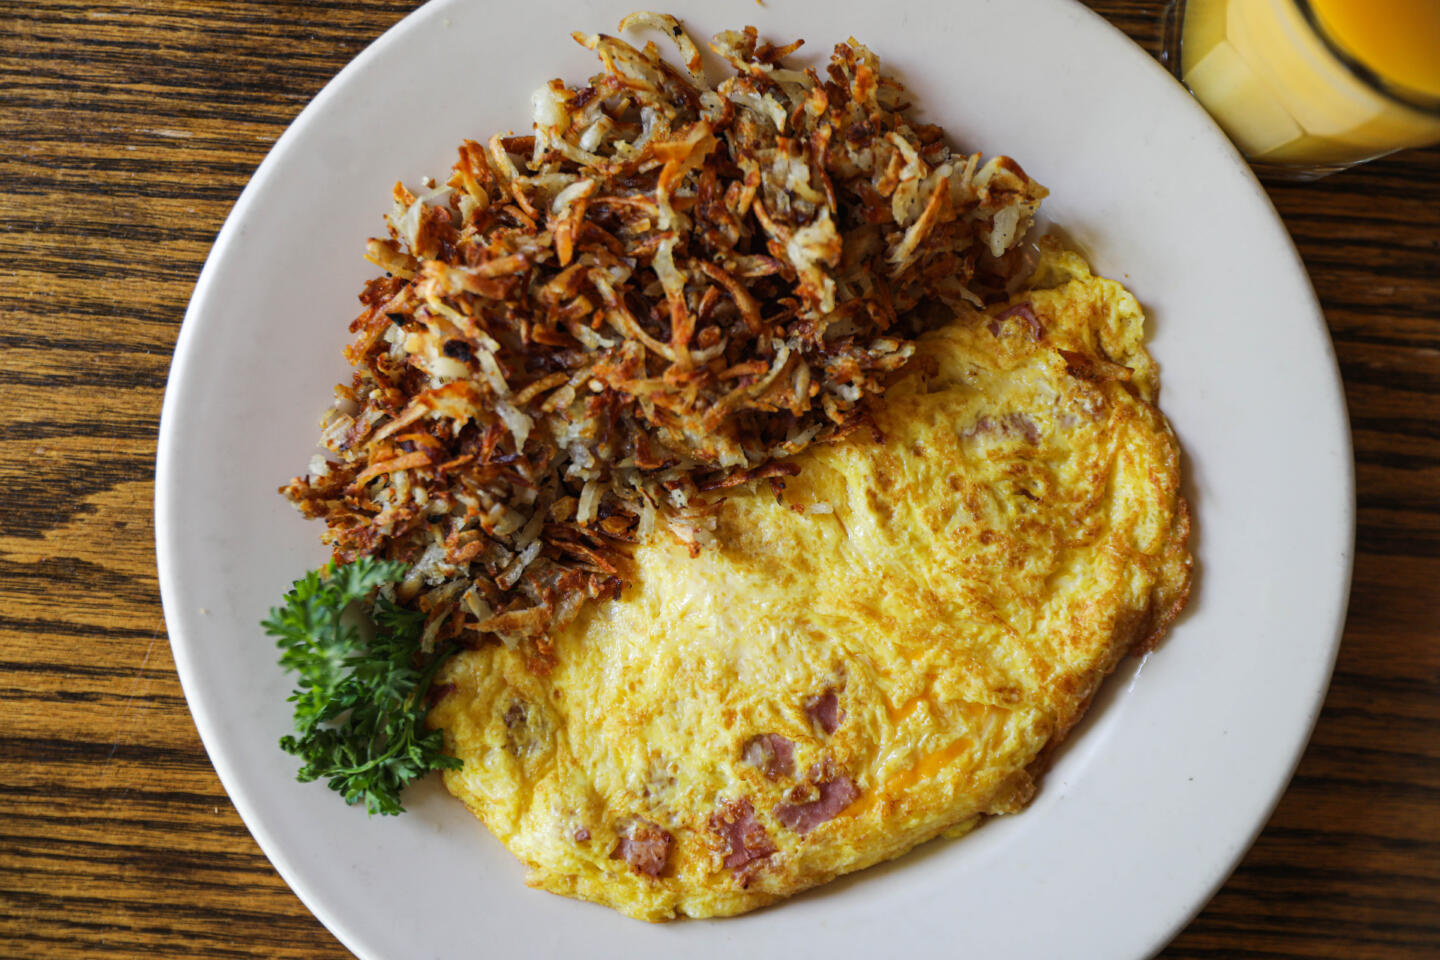 Ham & Cheese Omelette at R.J. Grunts